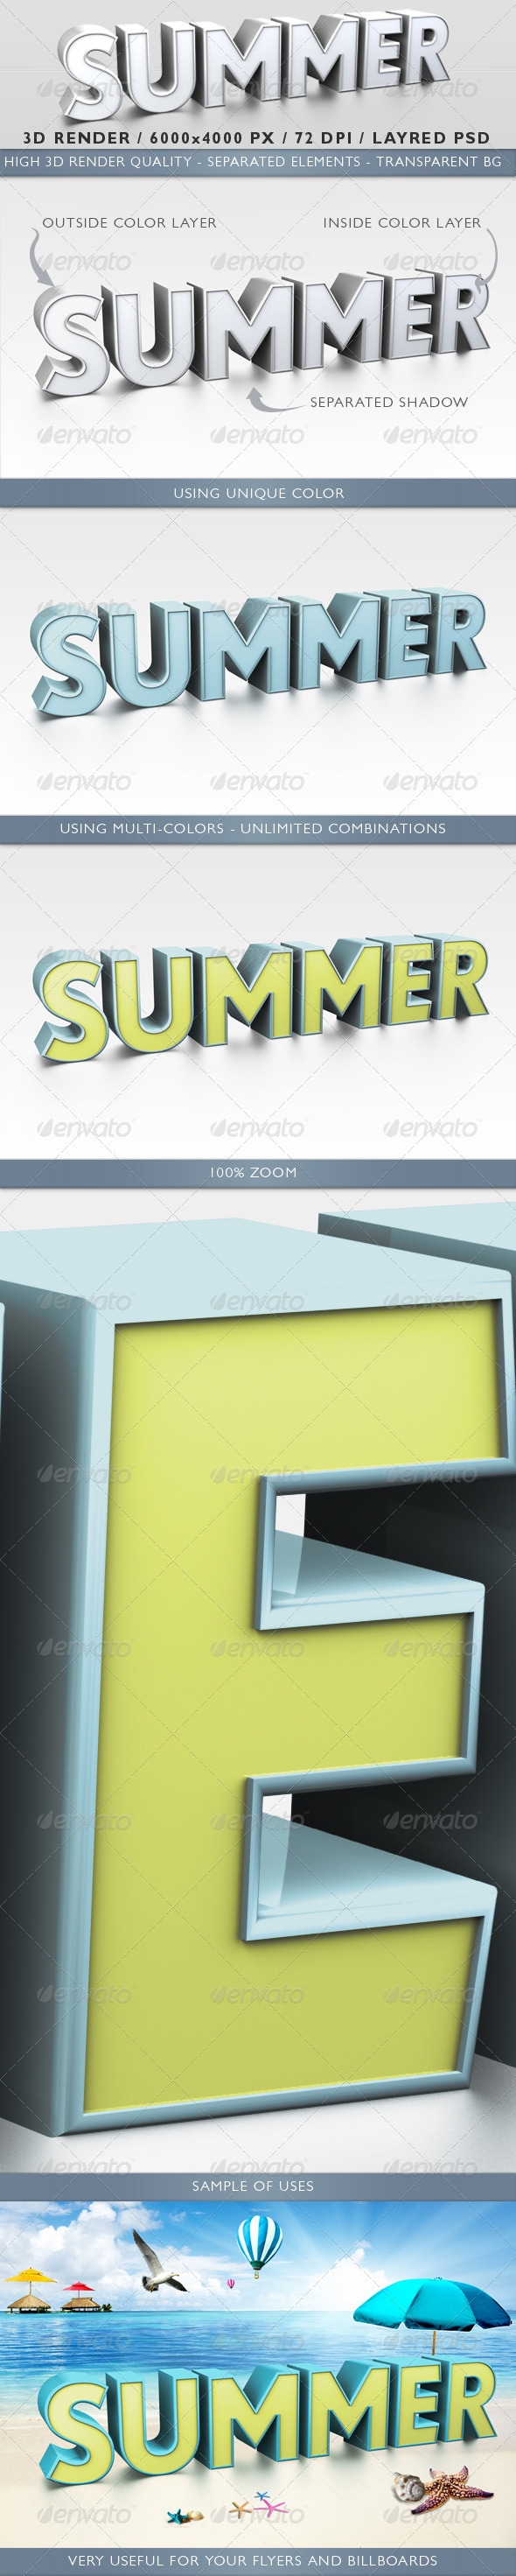 3D Render of a Summer Word - Text 3D Renders